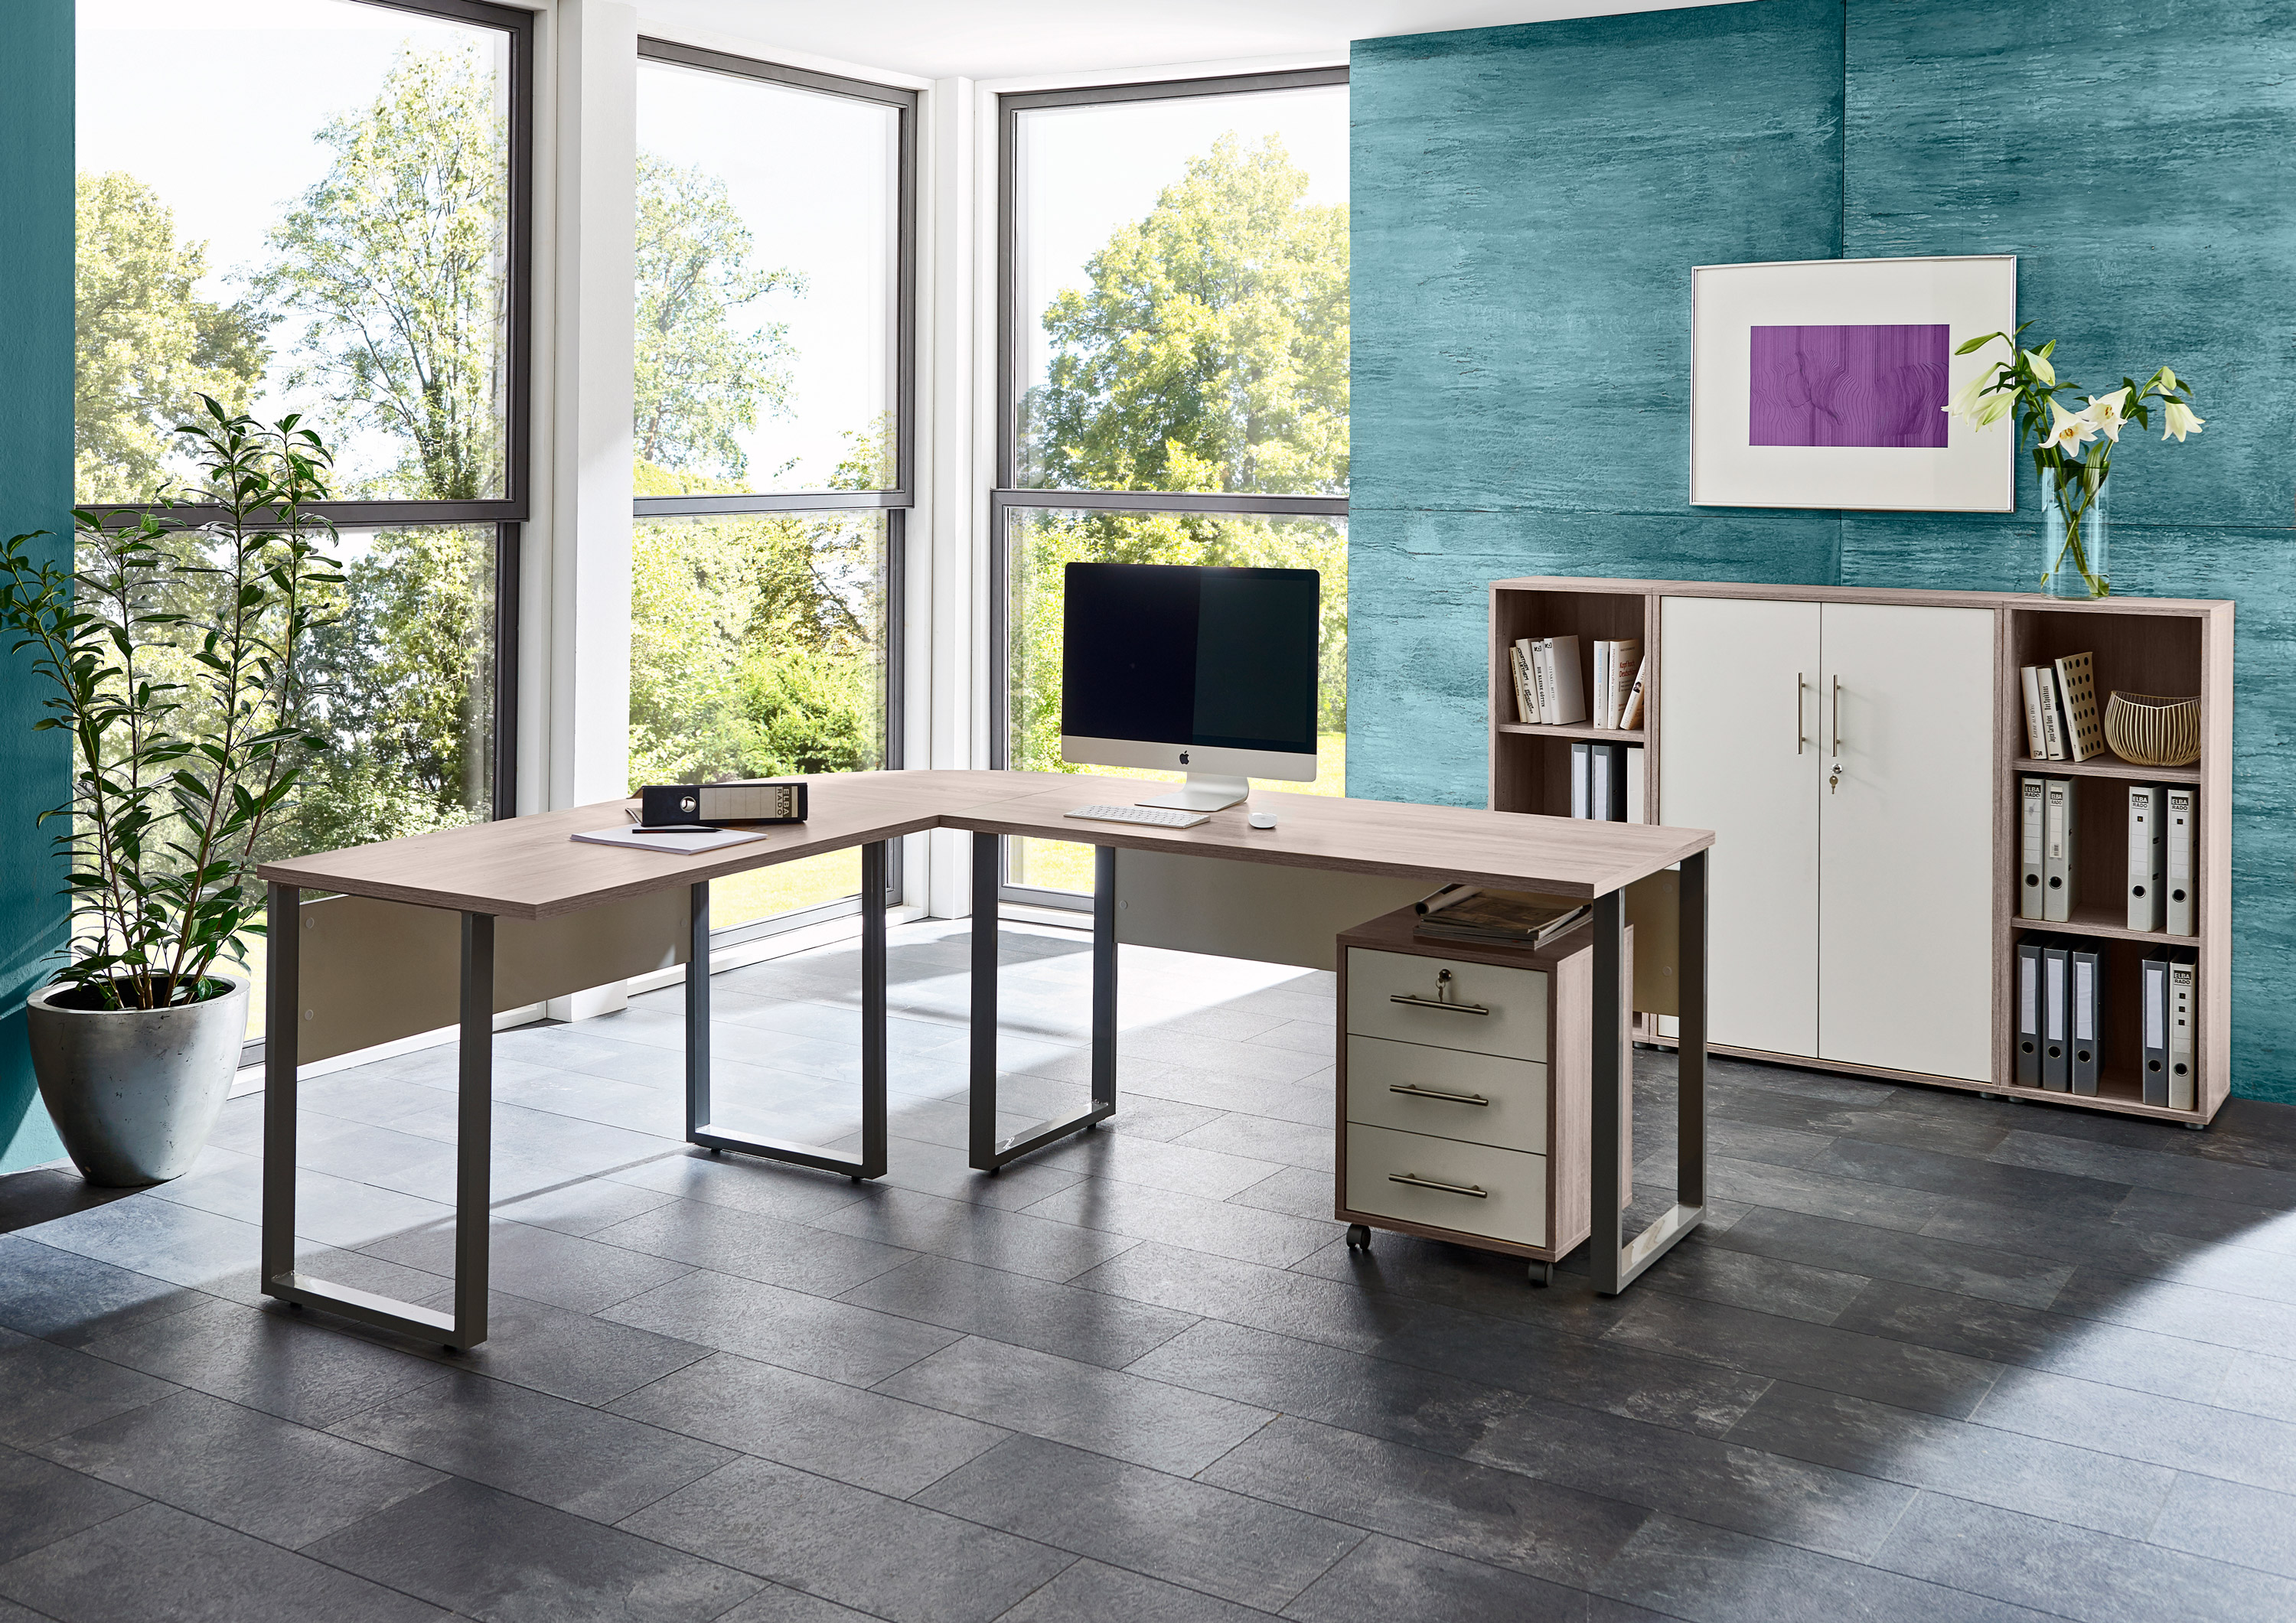 arbeitszimmer b ro office edition in sandeiche wei set 2. Black Bedroom Furniture Sets. Home Design Ideas